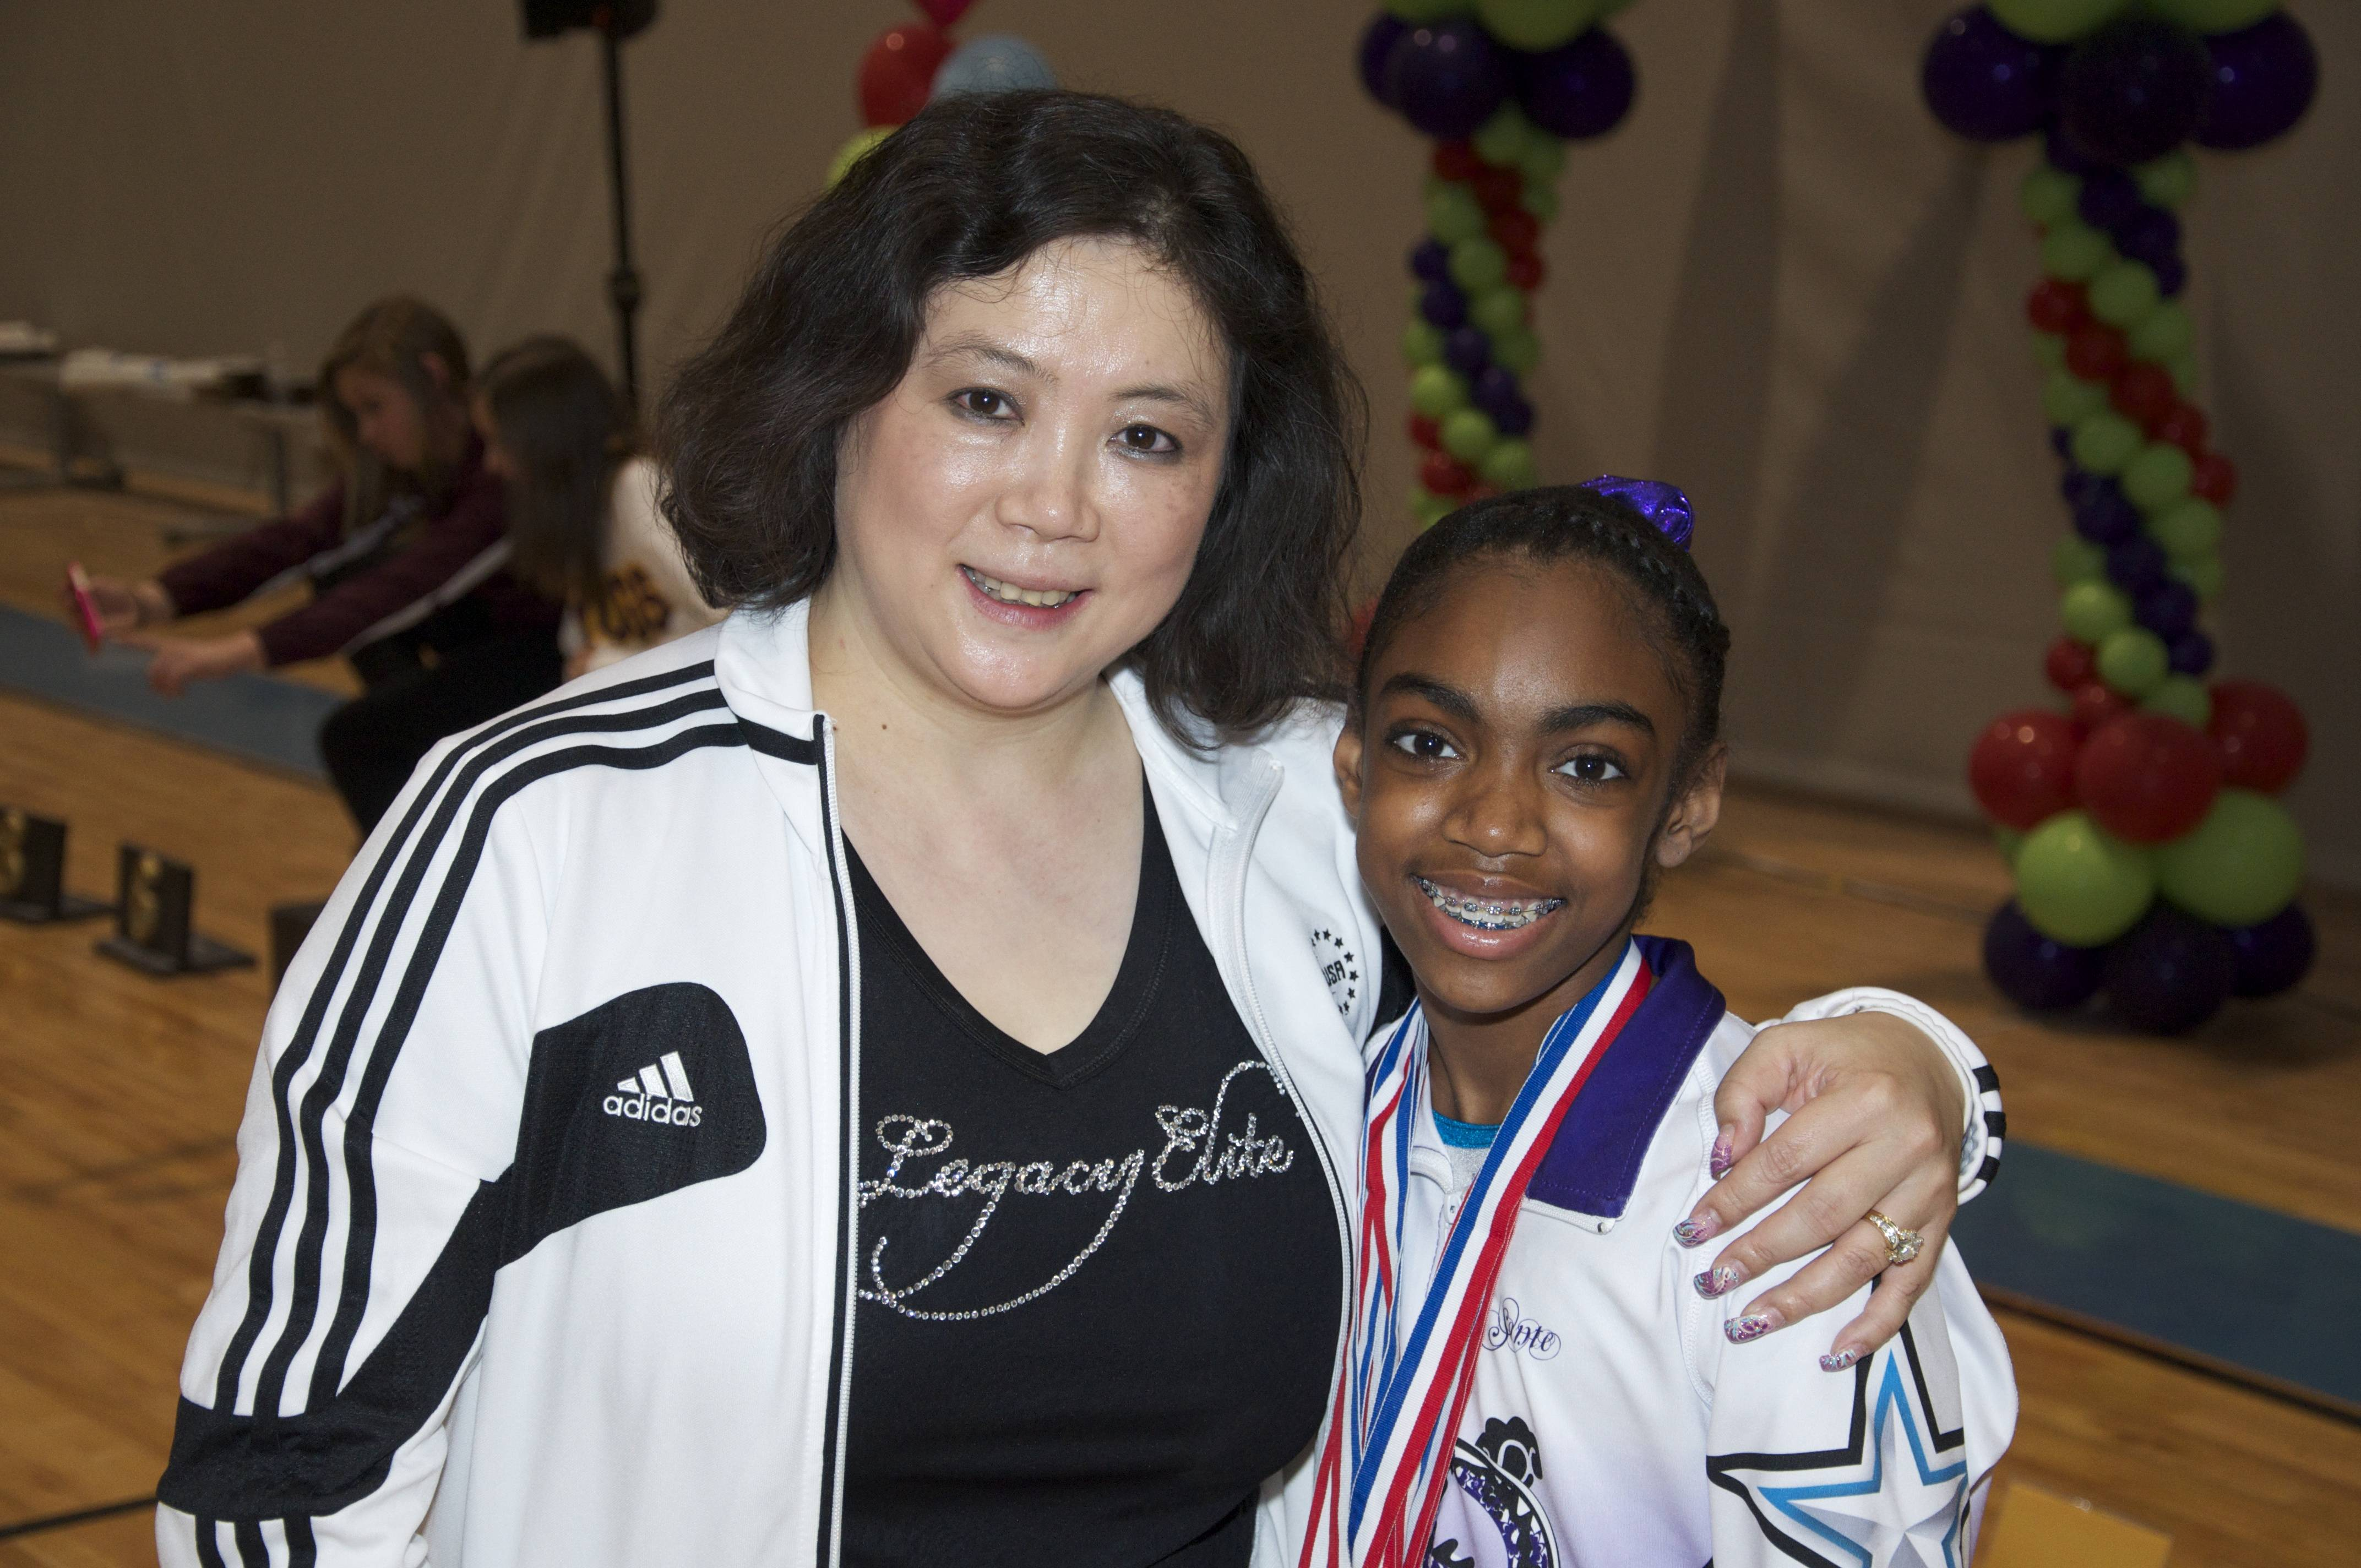 Sonte Turnage and her Coach Jiani Wu of Legacy Elite Gymnastics at the recent Illinois Level 8 State gymnastics meet in Bourbonnais, IL.